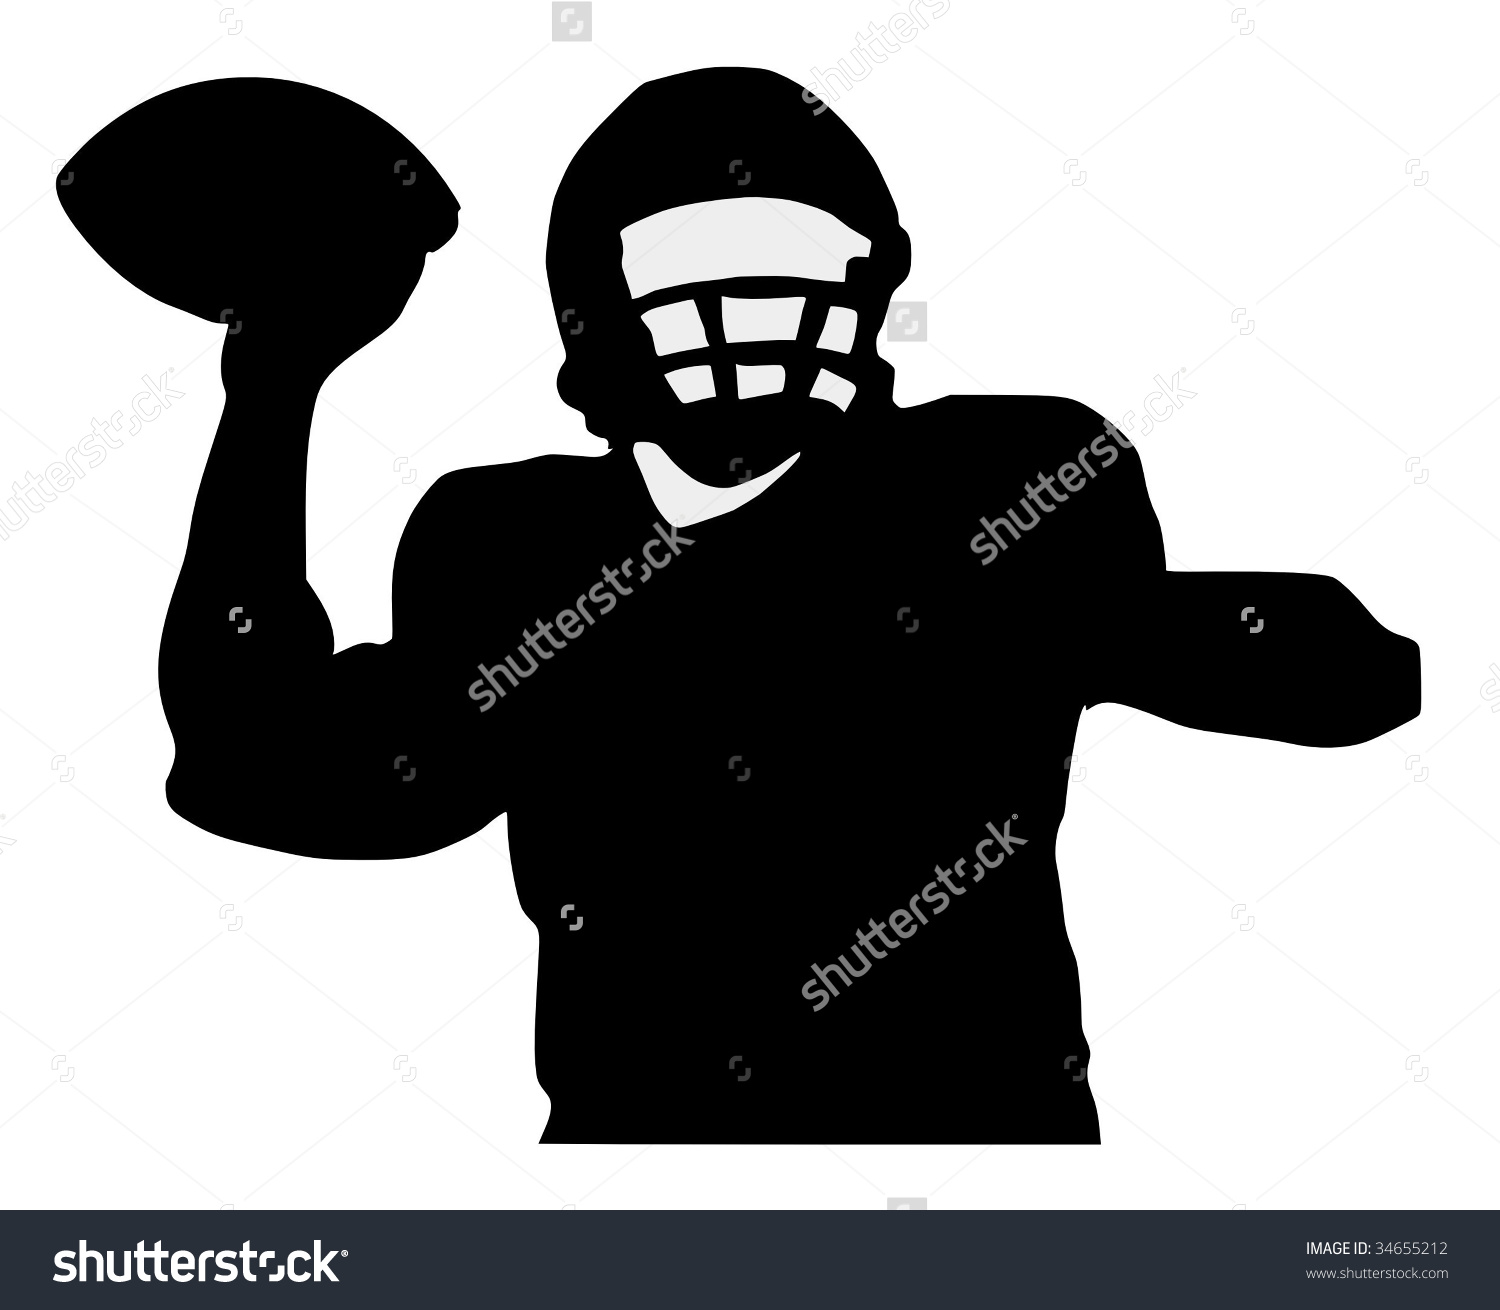 Silhouette Football Player Stock Vector 34655212.